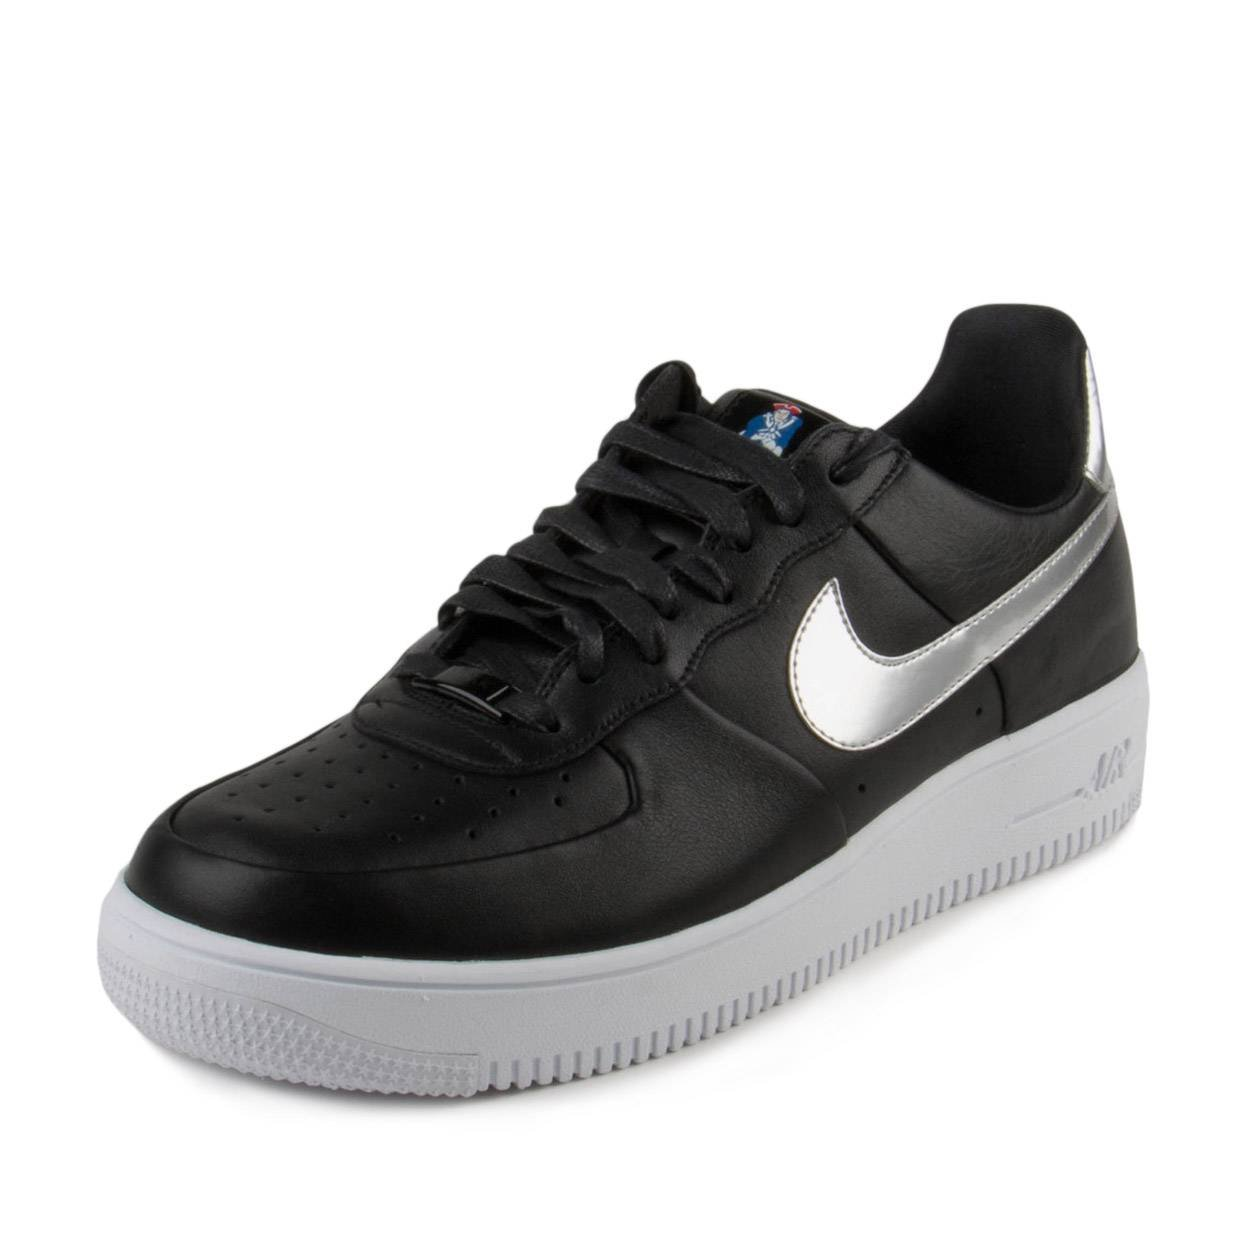 check out e4097 f67b5 Amazon.com   Nike Mens Air Force 1 Ultra Force RKK Patriots Black College  Navy-White Leather Size 8   Basketball